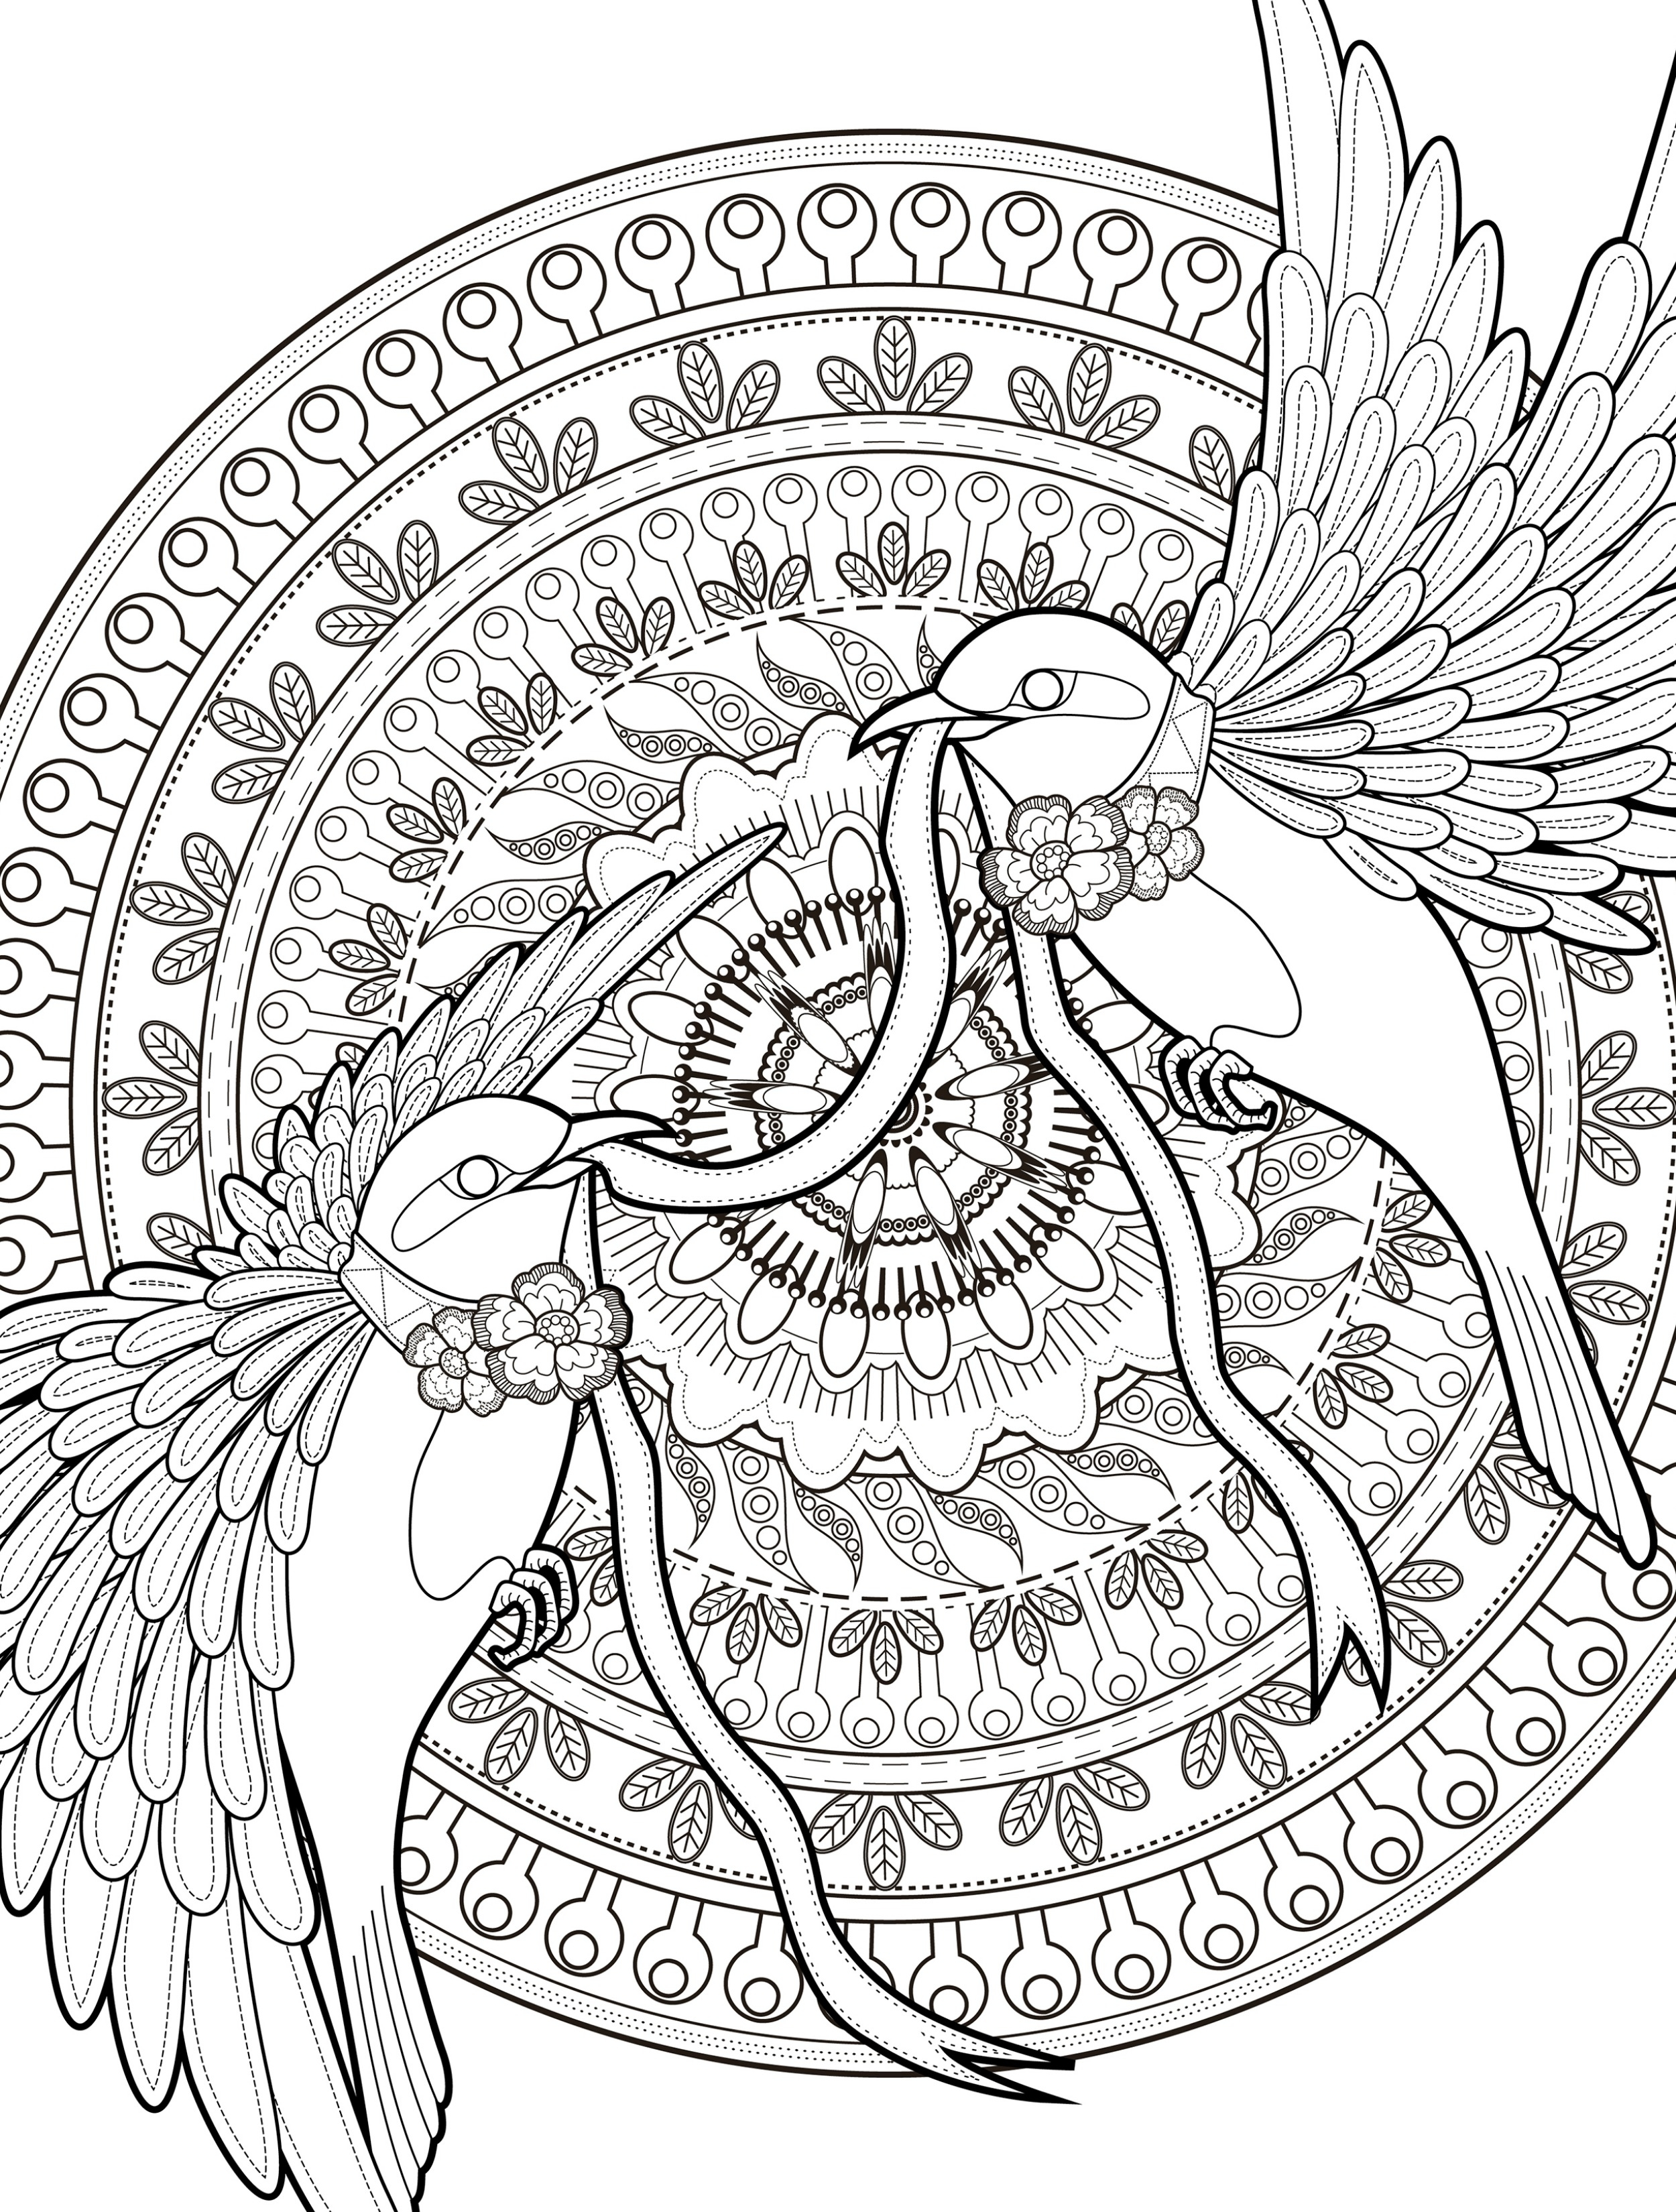 free adult coloring pages - 24